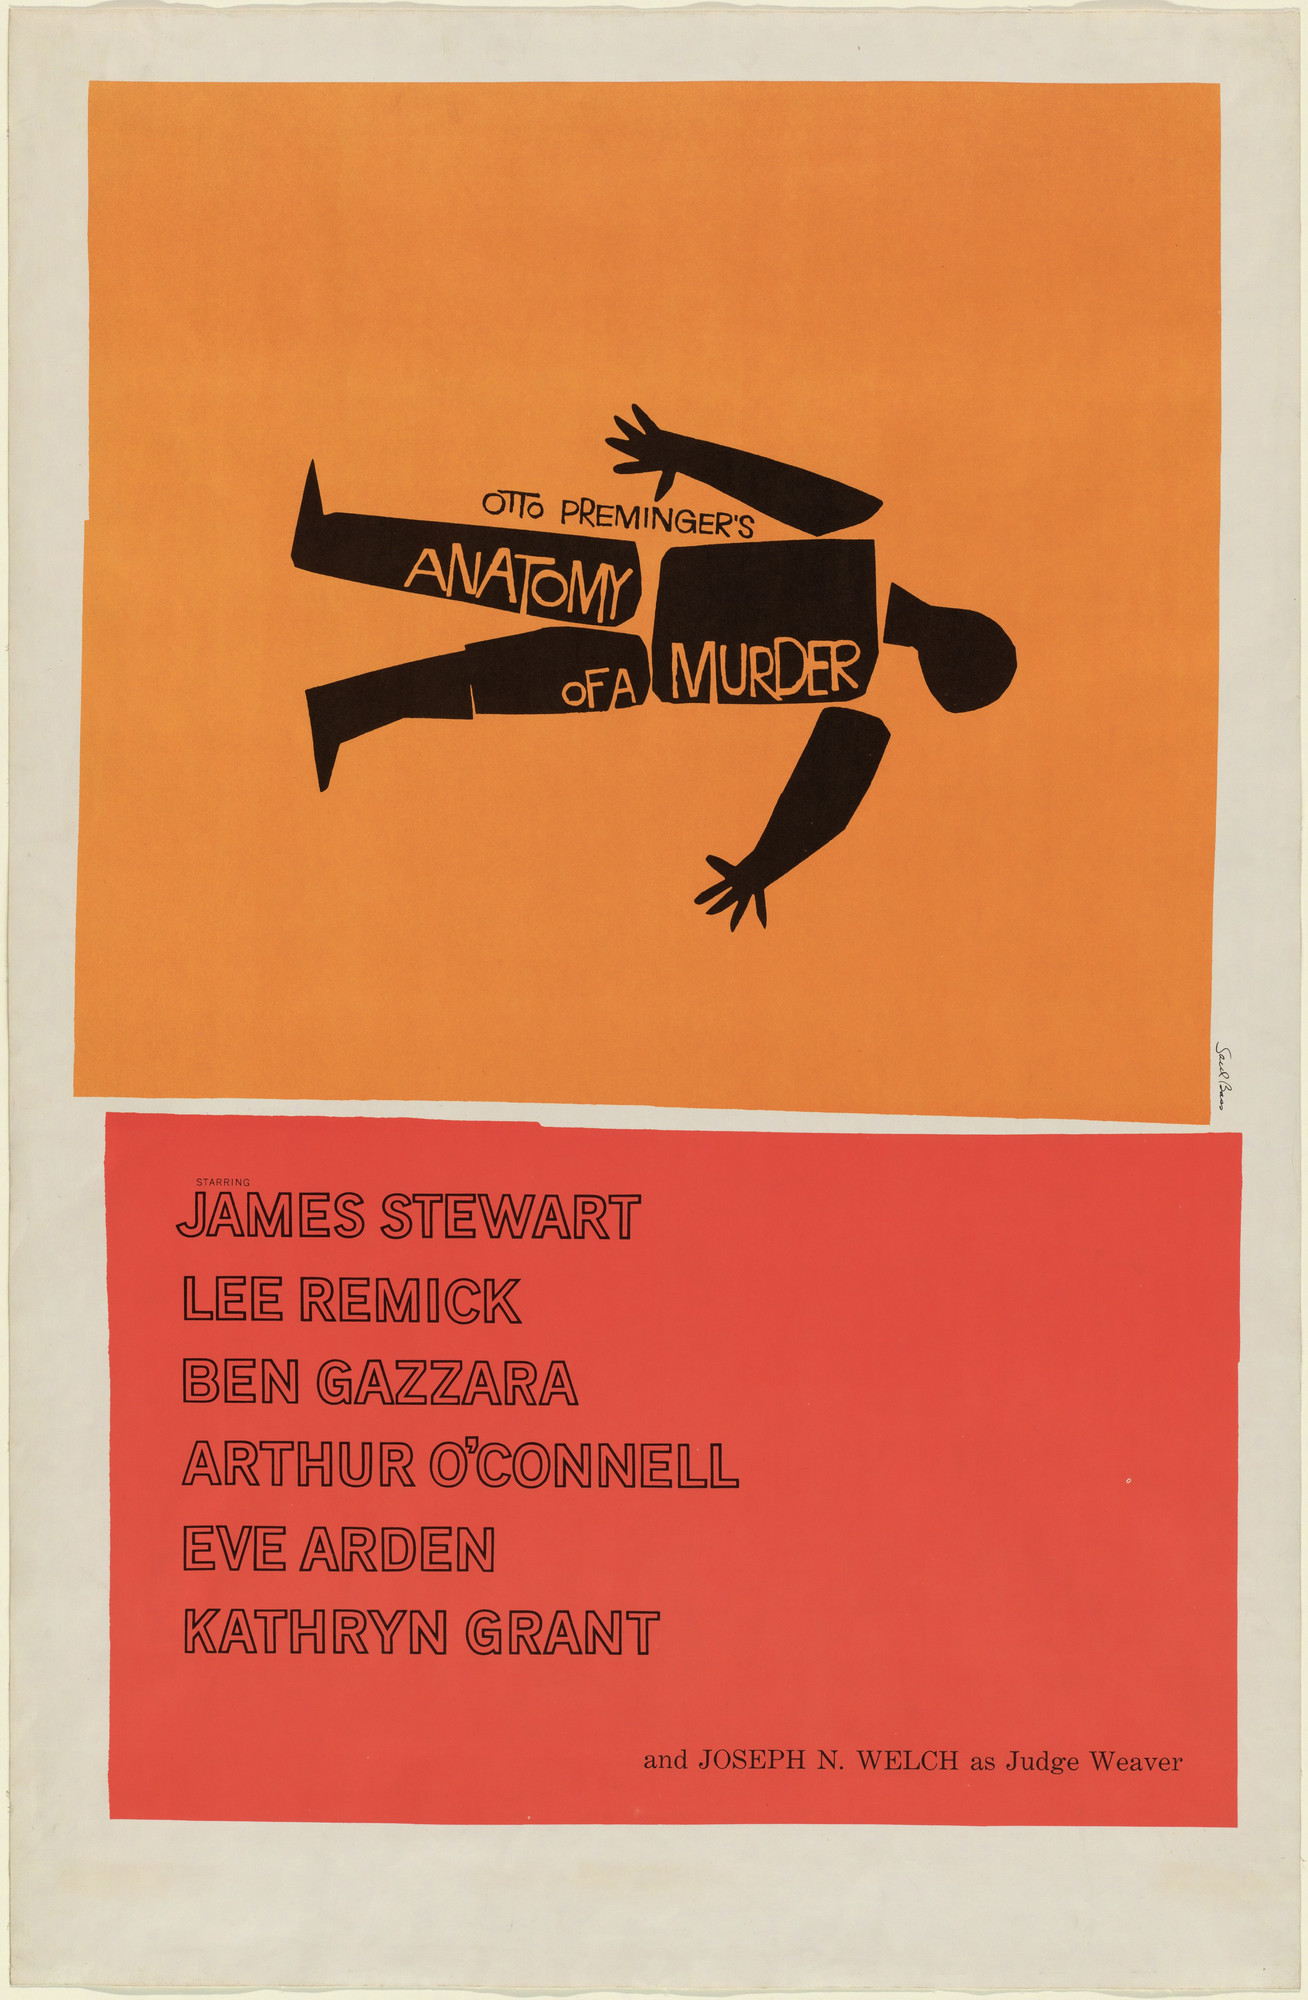 Saul Bass. Poster for the film Anatomy of a Murder directed by Otto Preminger. 1959